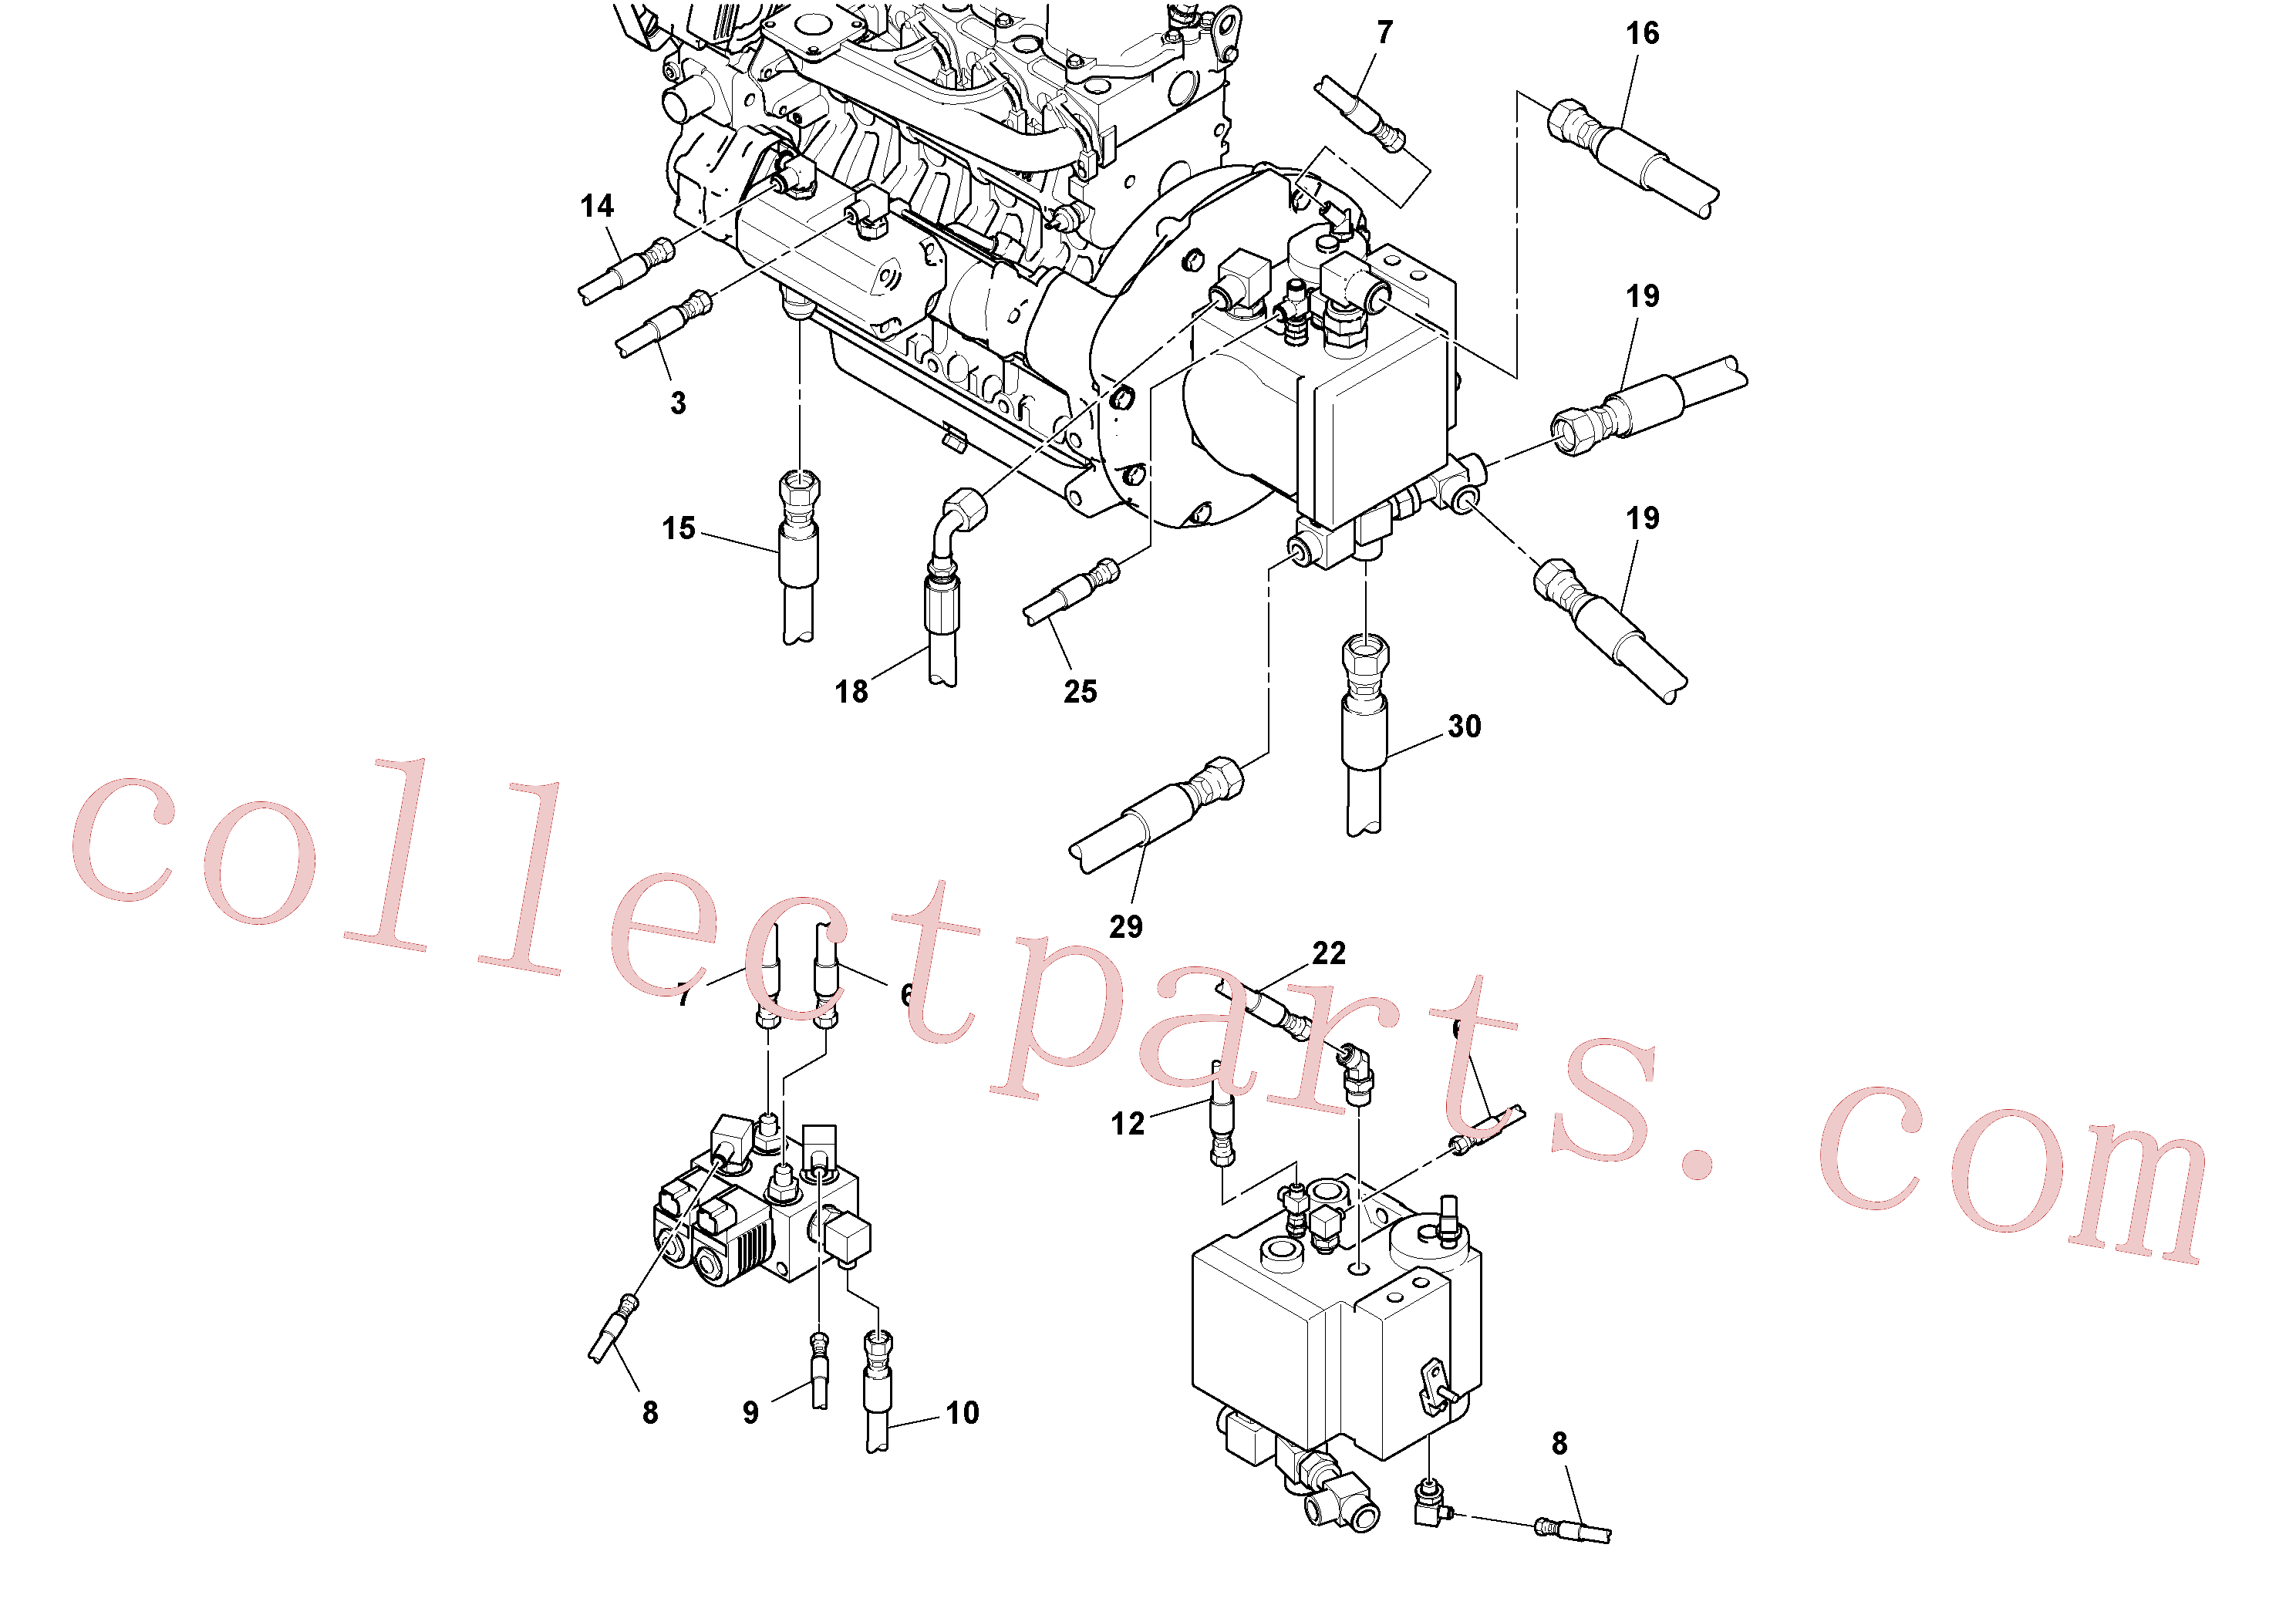 RM13334214 for Volvo Rear Frame Hoses Installation(1051405 assembly)